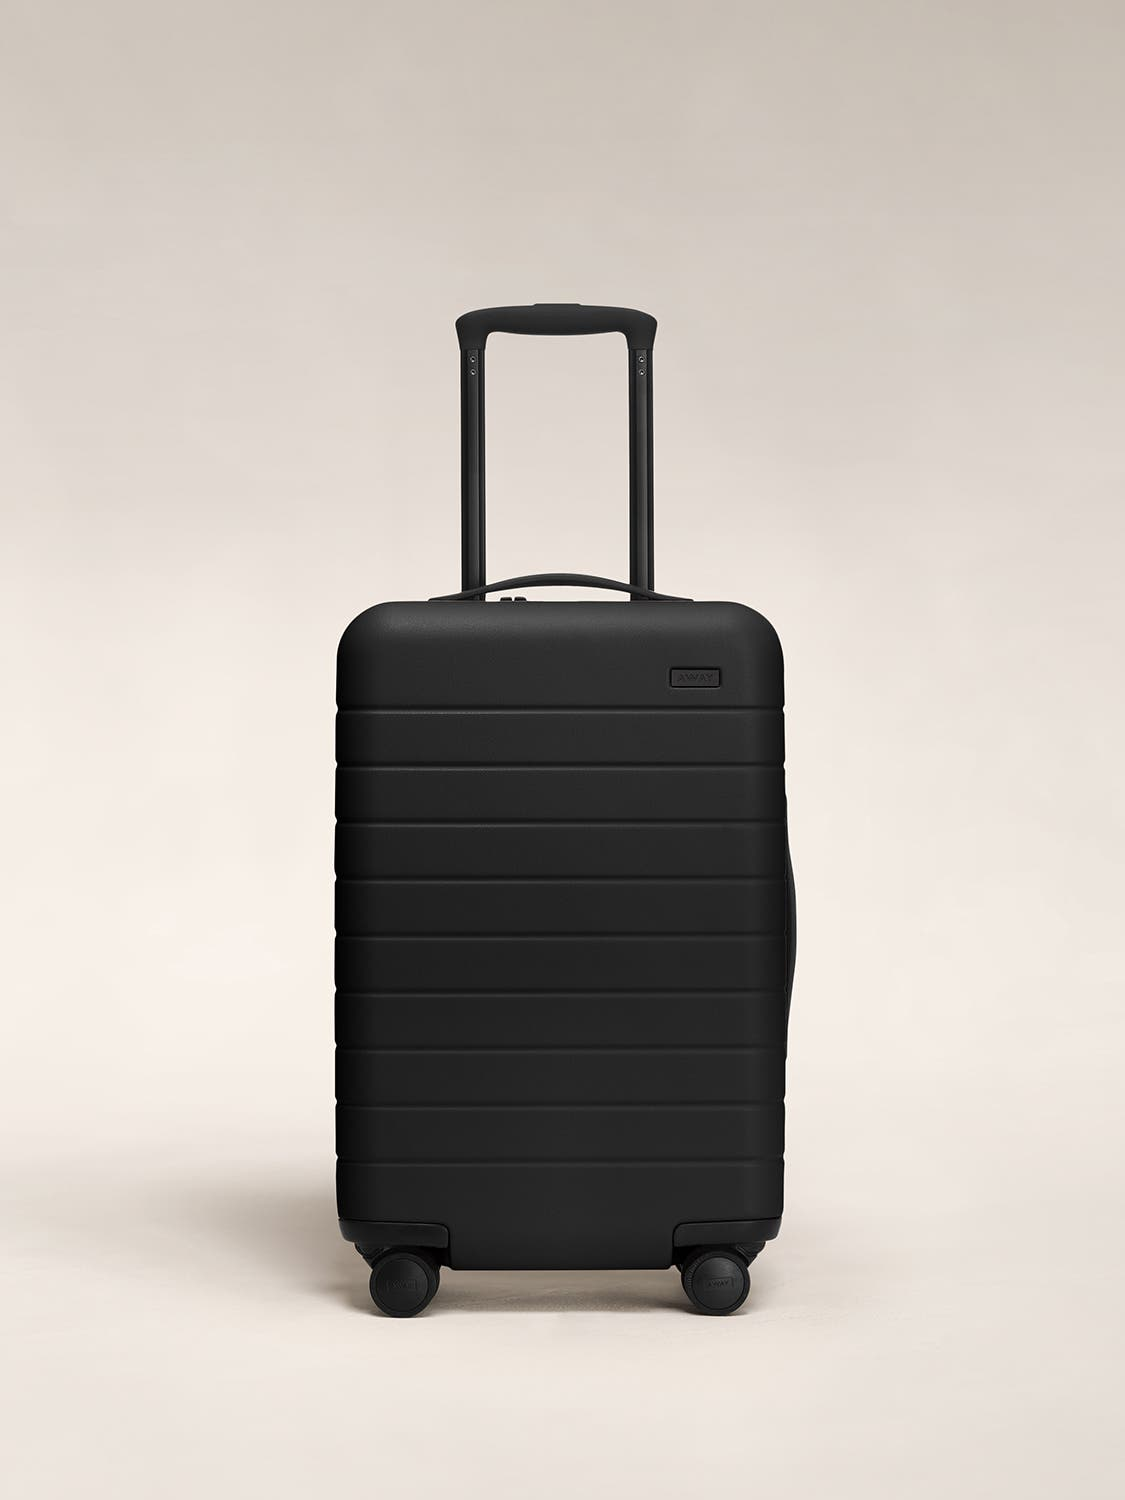 Front view of a black carry-on suitcase with a hard shell, nylon front pocket, and telescopic handle pulled out.